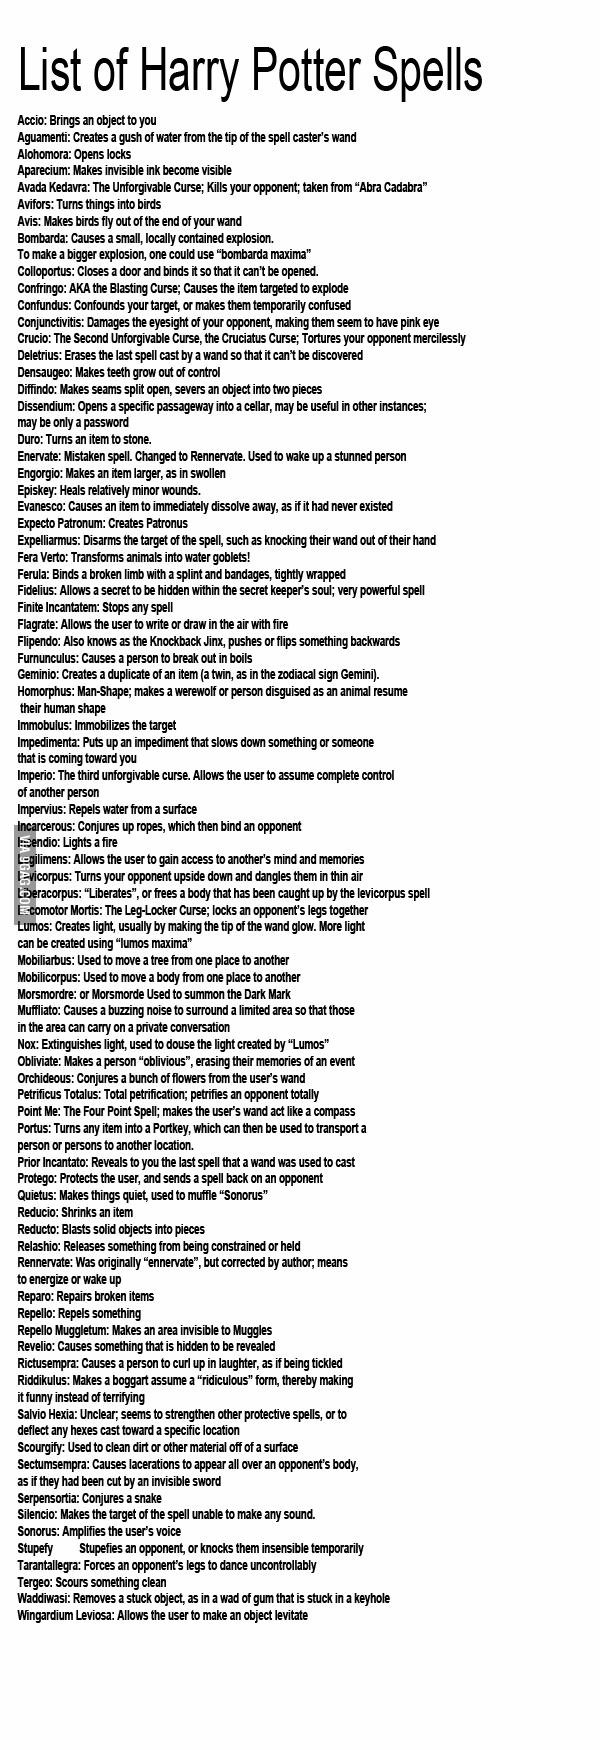 Harry Potter List of Spells and What They Do from 9gag.